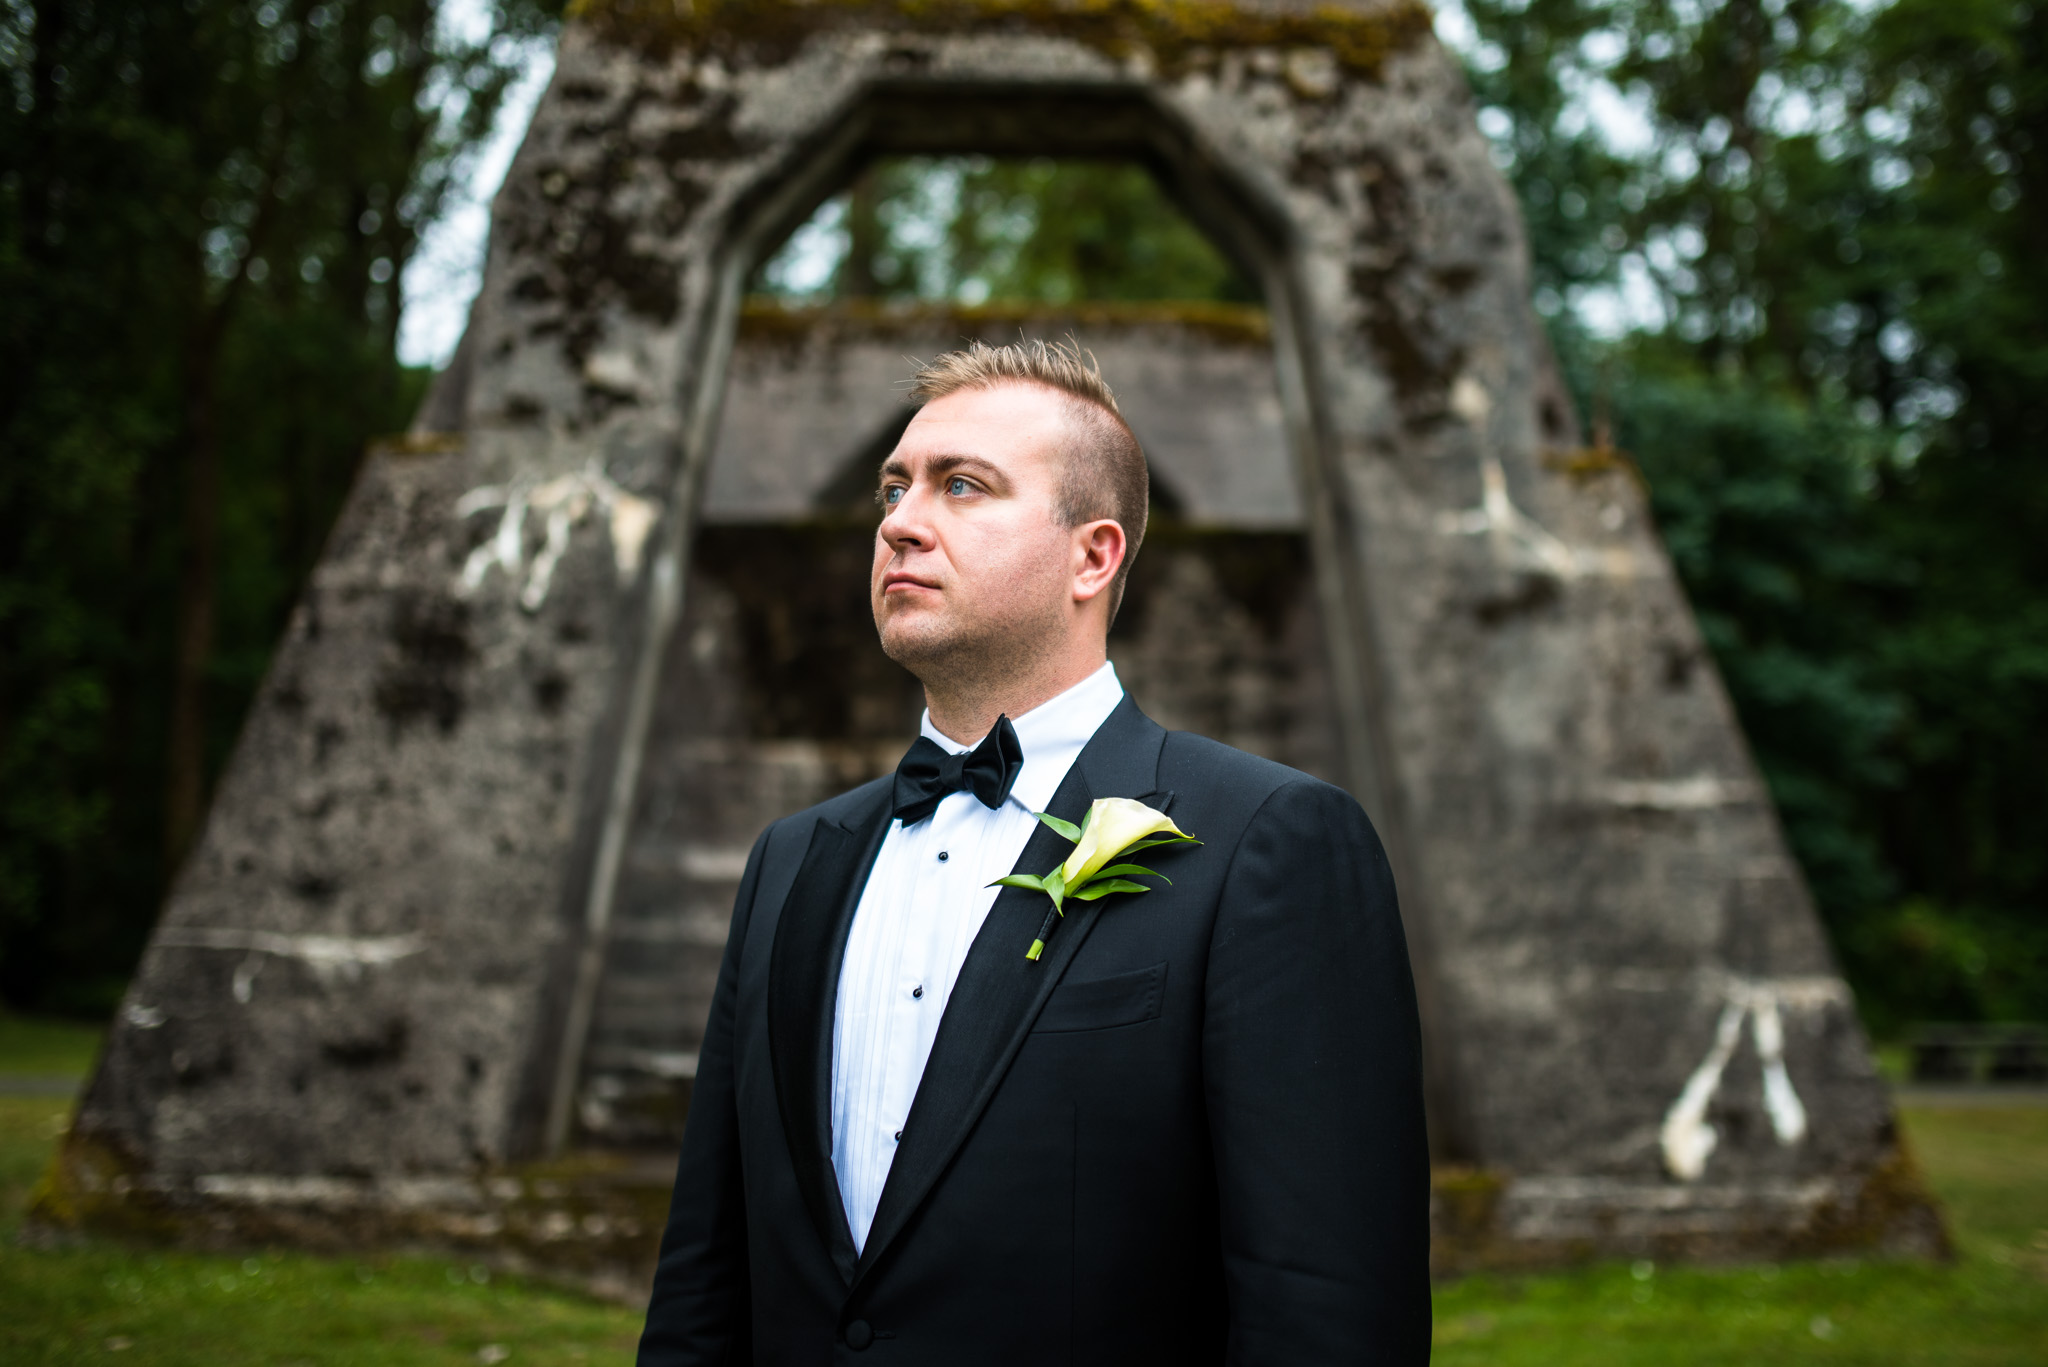 victoria-wedding-photographers-westwood-plateau-wedding-33.jpg